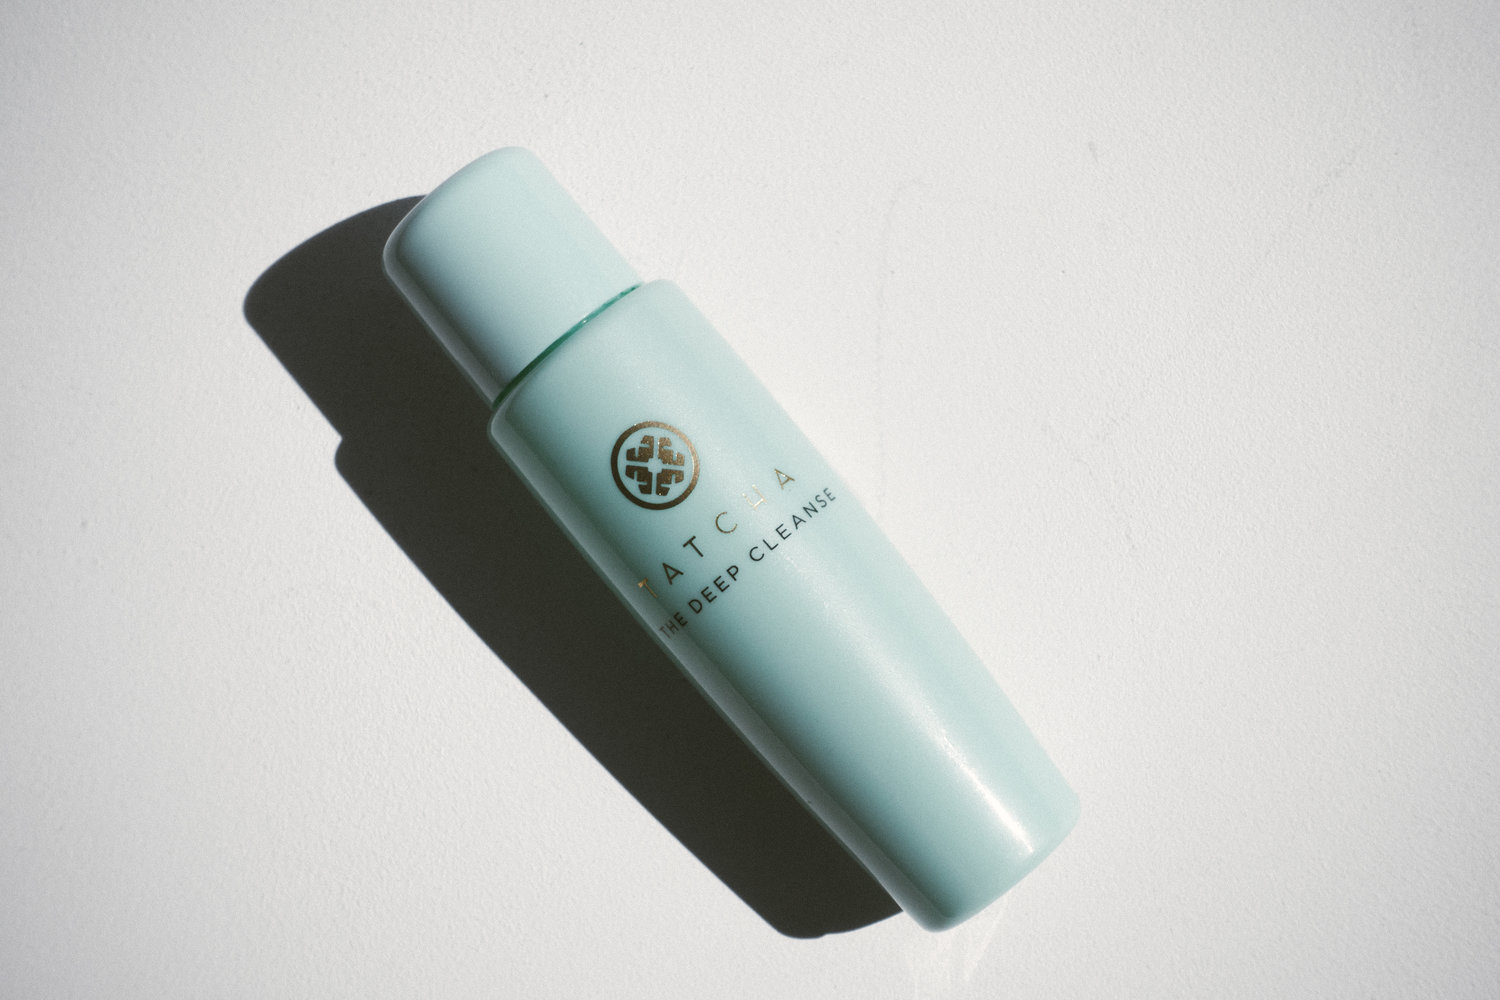 Review: Tatcha The Deep Cleanse — THE GLOSSIER